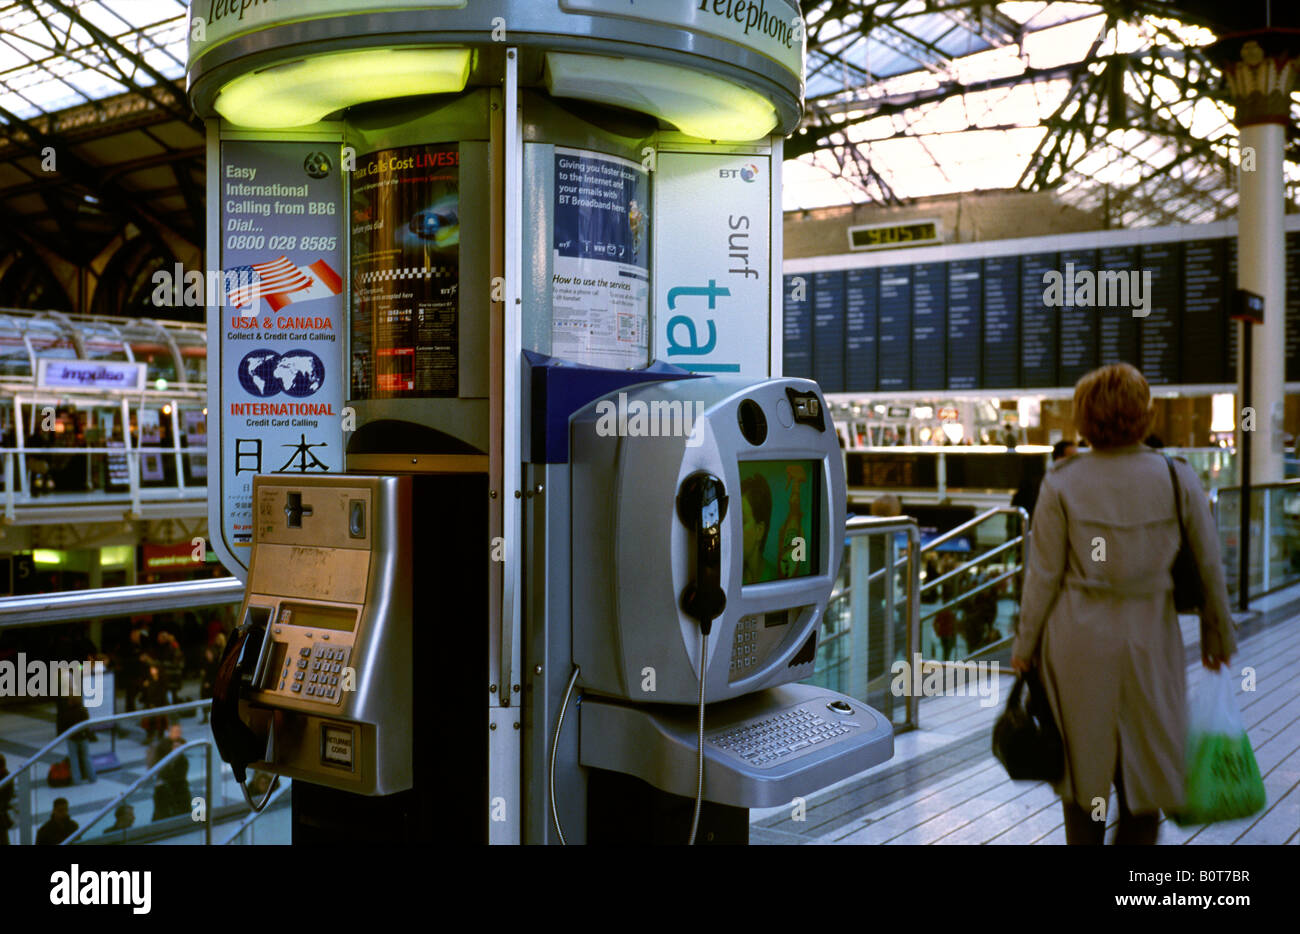 Oct 6, 2003 - Broadband BT payphone with Internet access at Liverpool St. Station in London. - Stock Image